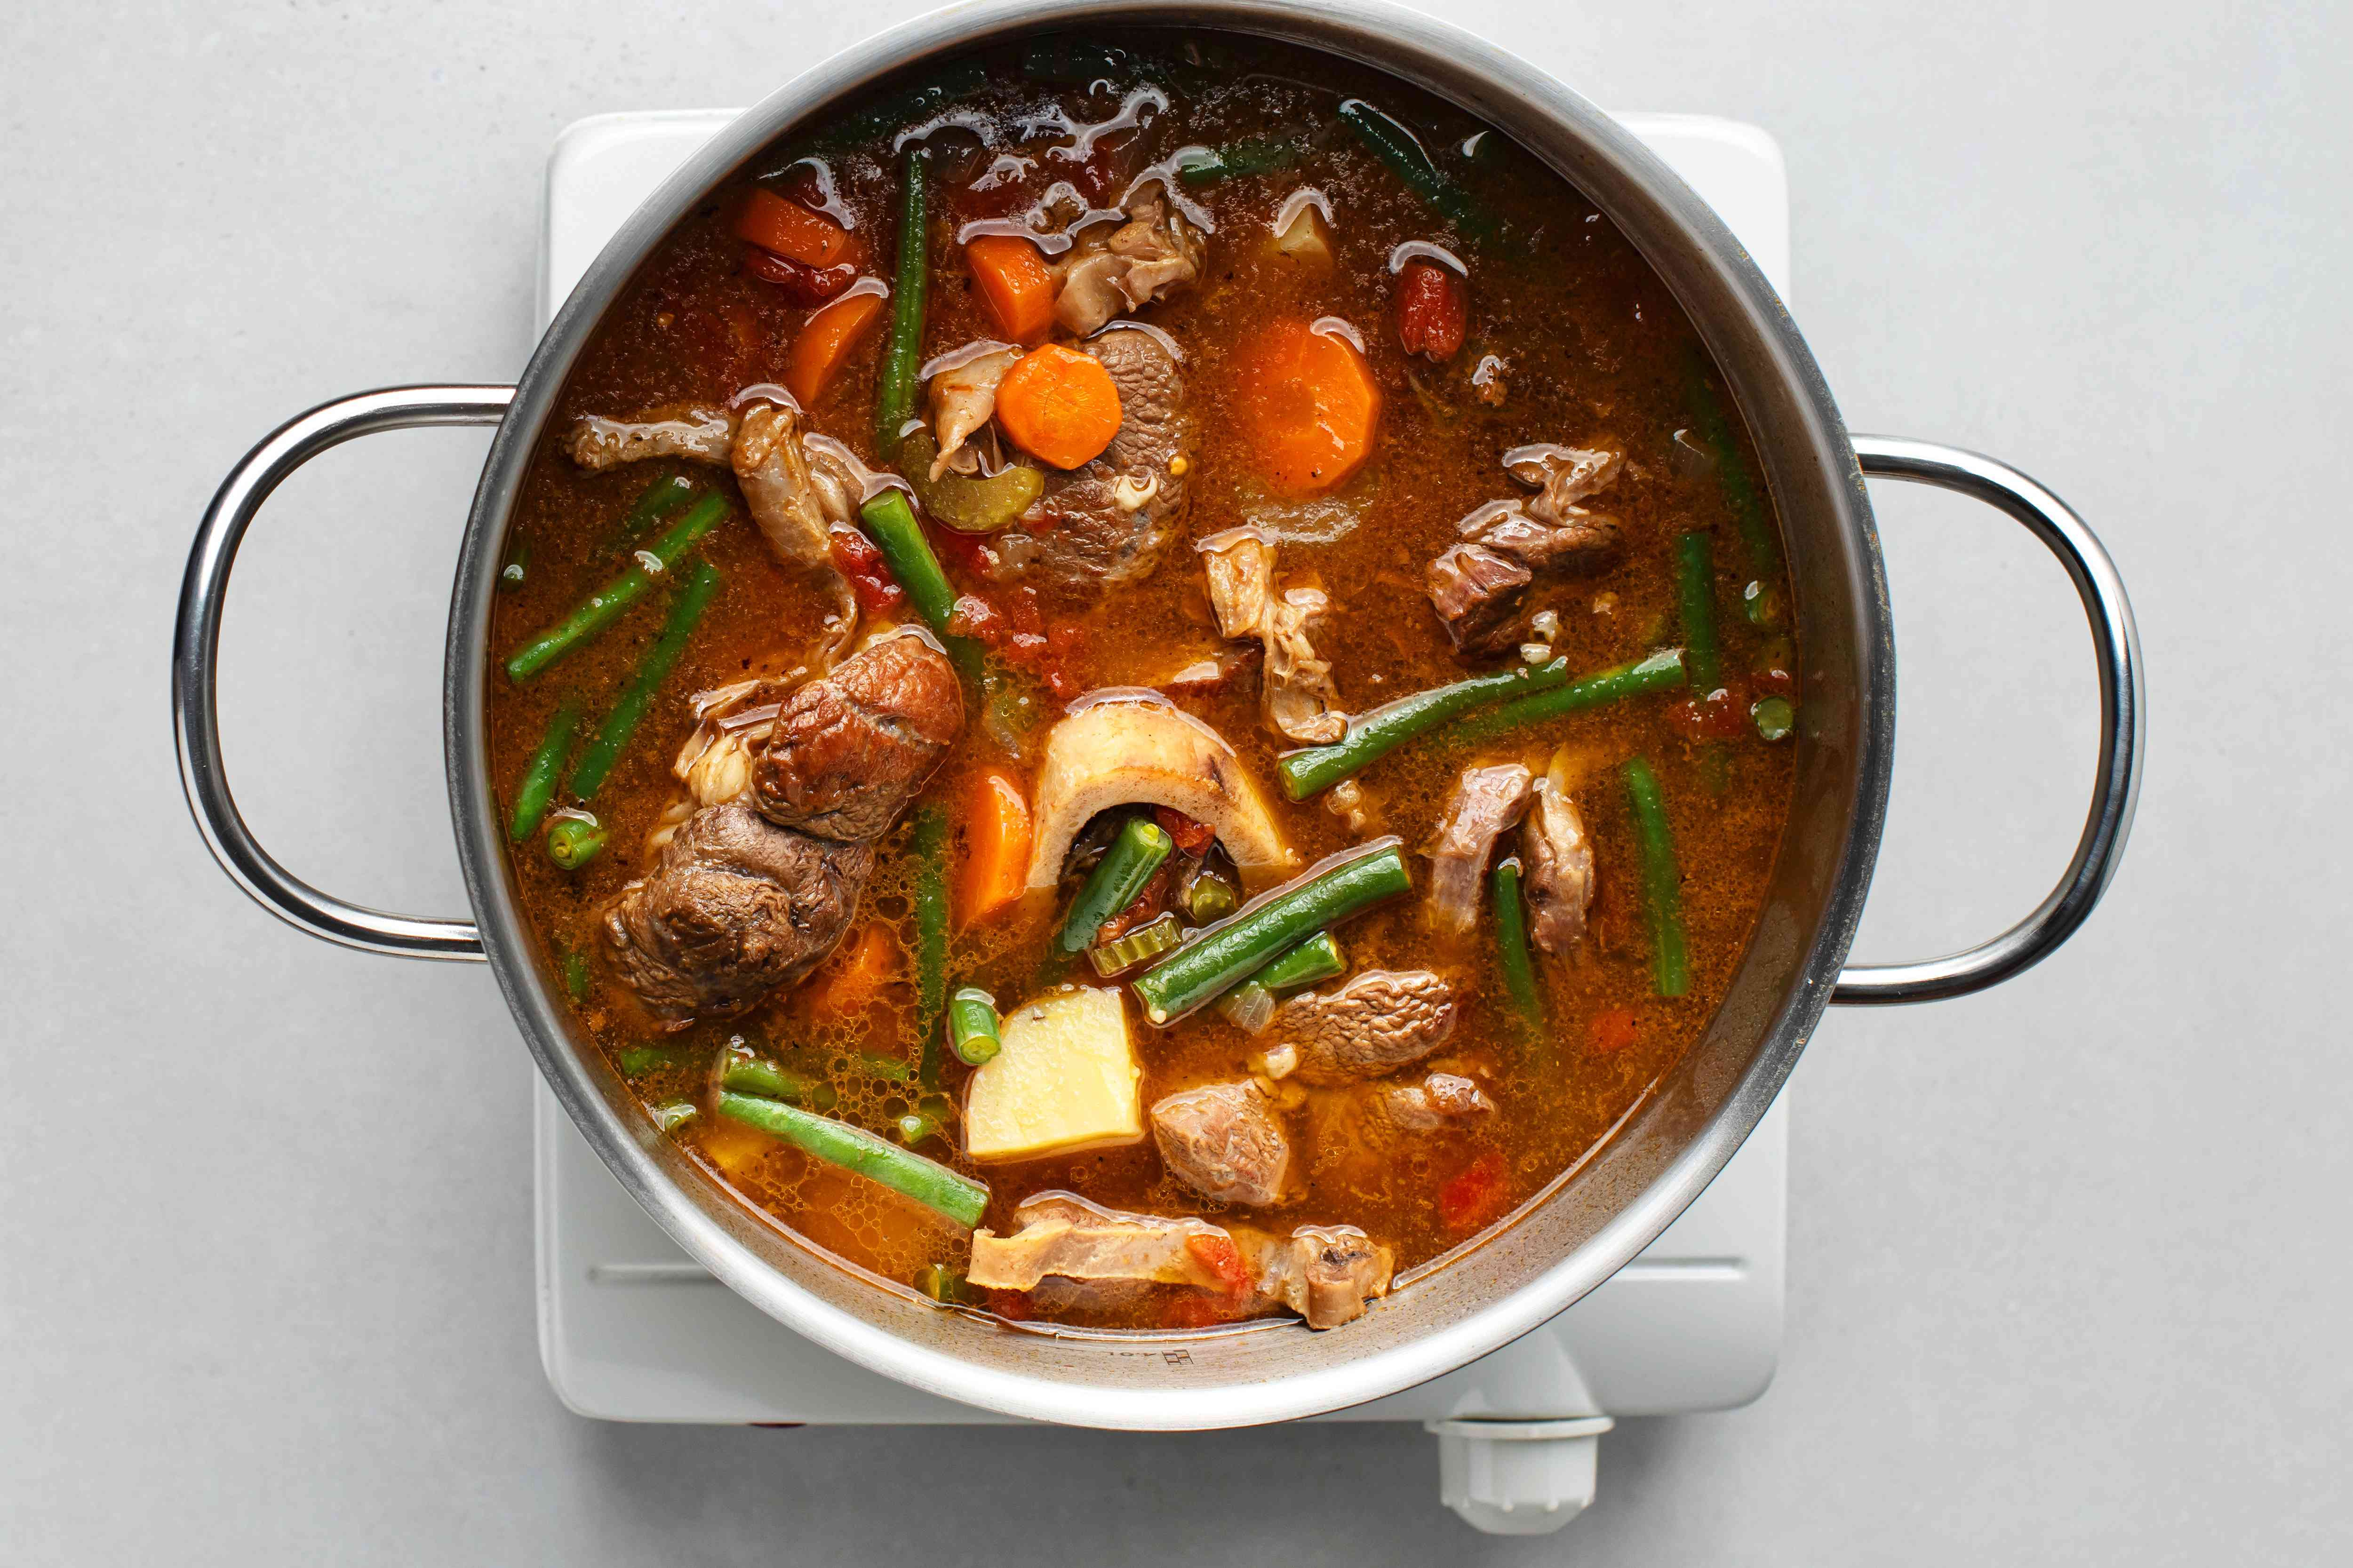 Add the carrots, string beans, potatoes, celery, tomatoes, and rice into the beef-and-onion mixture